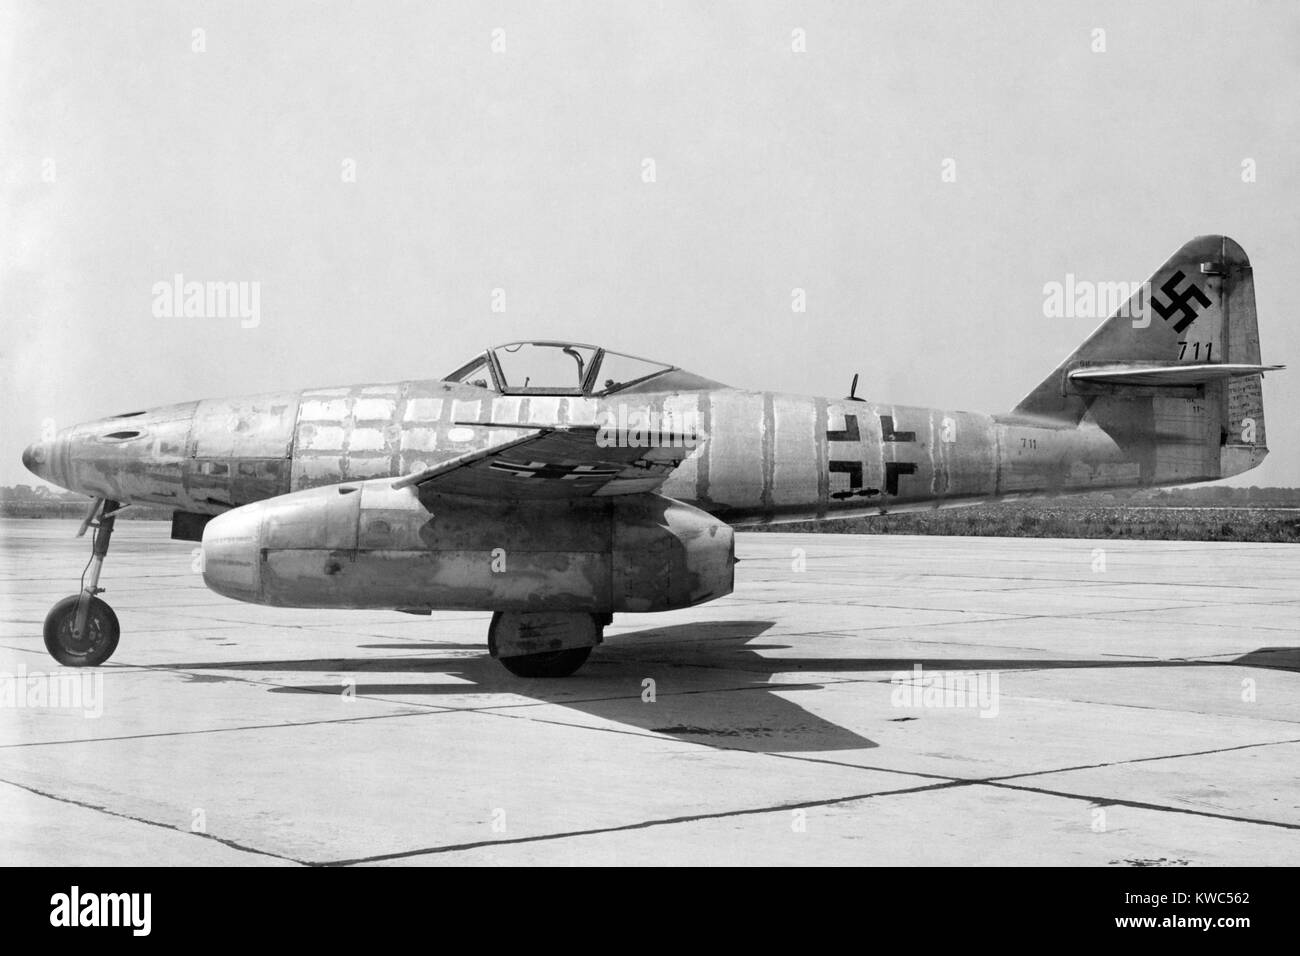 German Messerschmitt 262 jet-propelled plane in possession of the U.S. Air Force after World War 2. Side view. 1945. - Stock Image